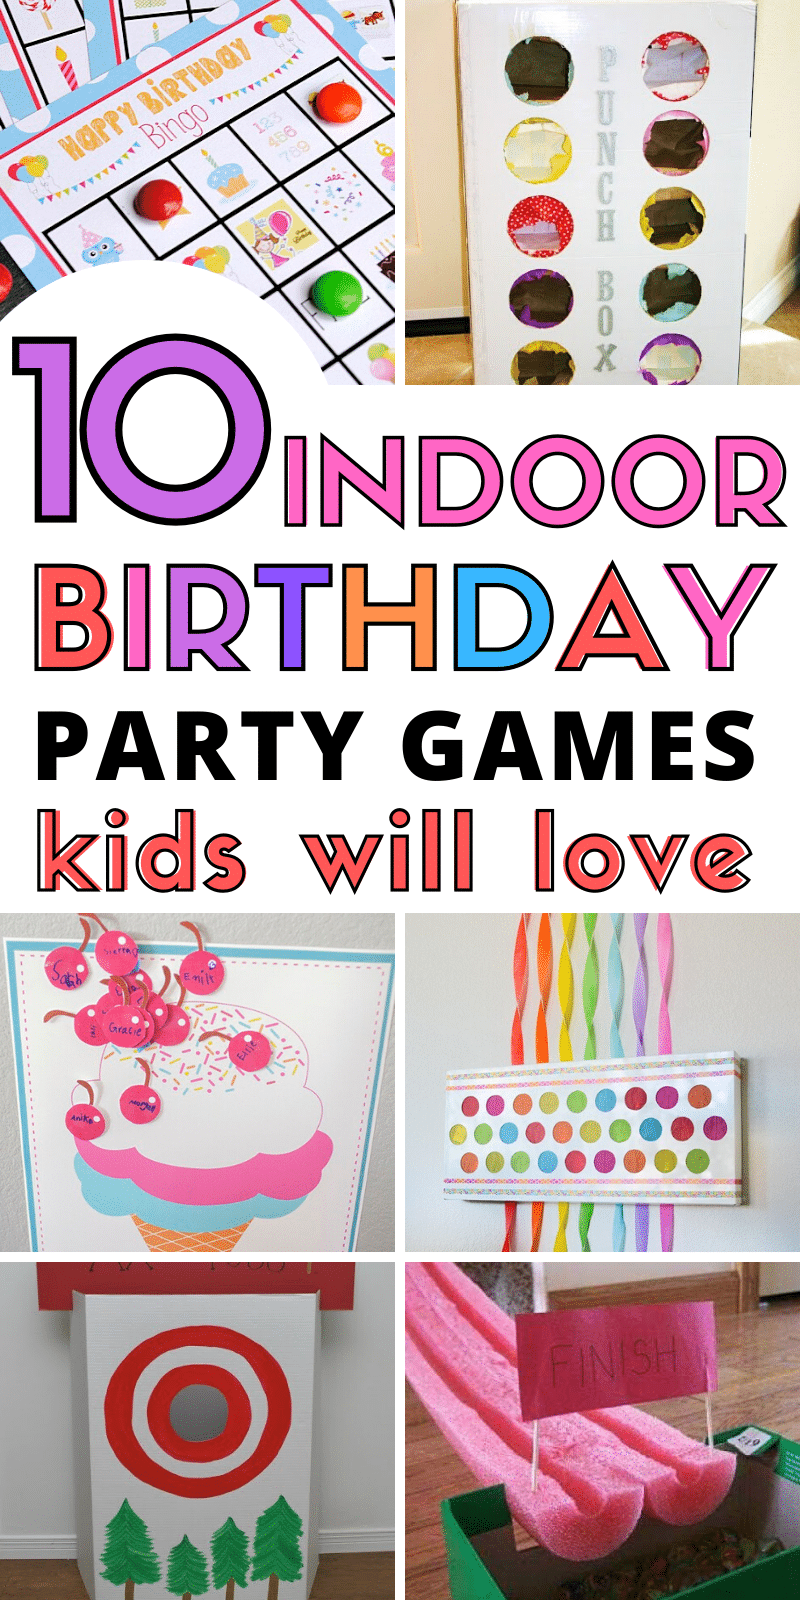 10 Indoor Birthday Party Games Kids Will Love This Tiny Blue House